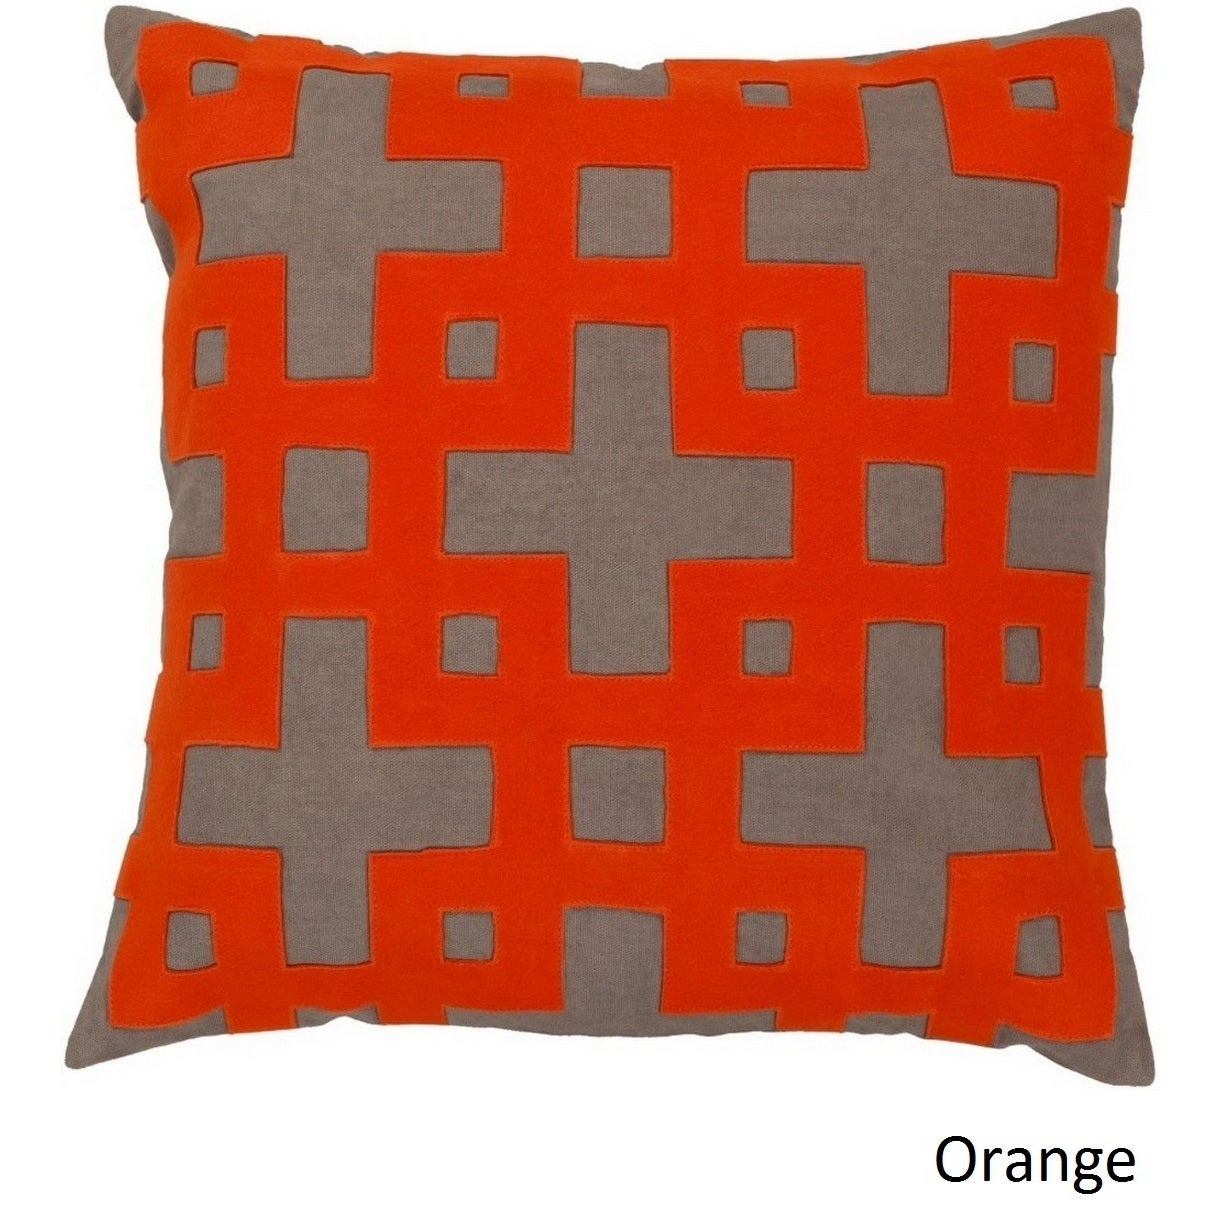 Jones 22-inch Decorative Geometric Feather Down or Polyester Filled Pillow (Down)